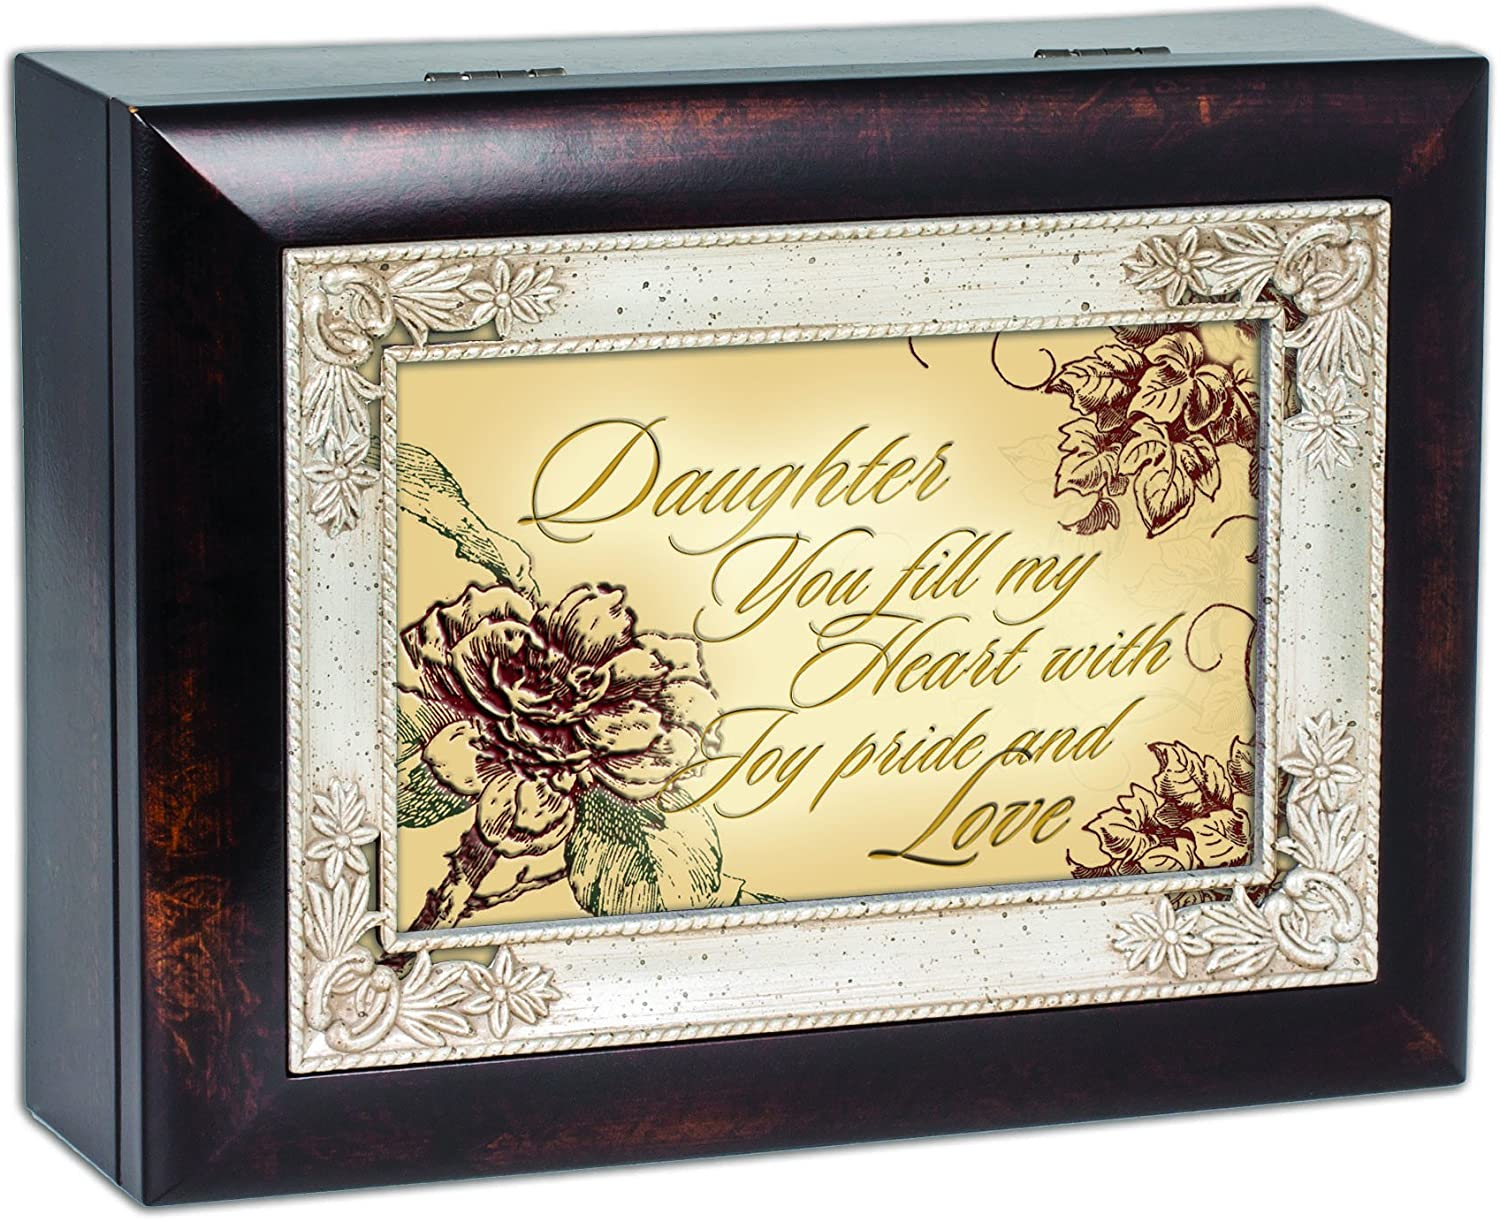 Cottage Garden Daughter You Fill My Heart with Joy Burlwood Jewelry Music Box Plays Amazing Grace